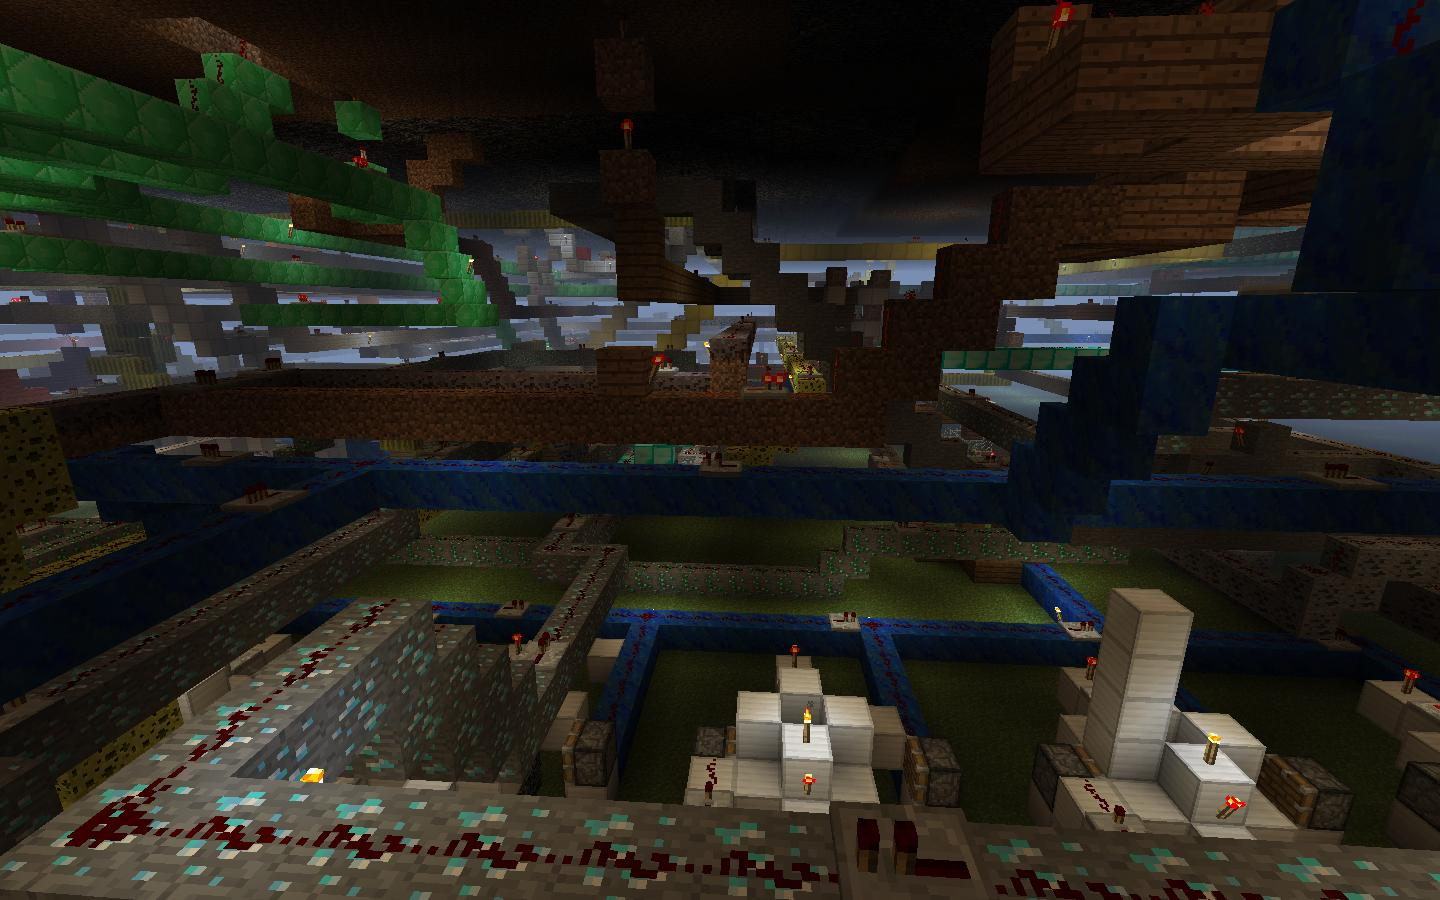 http://minecraft-forum.net/wp-content/uploads/2013/08/5ec3a__A-Day-in-Tuscarora-Map-5.jpg